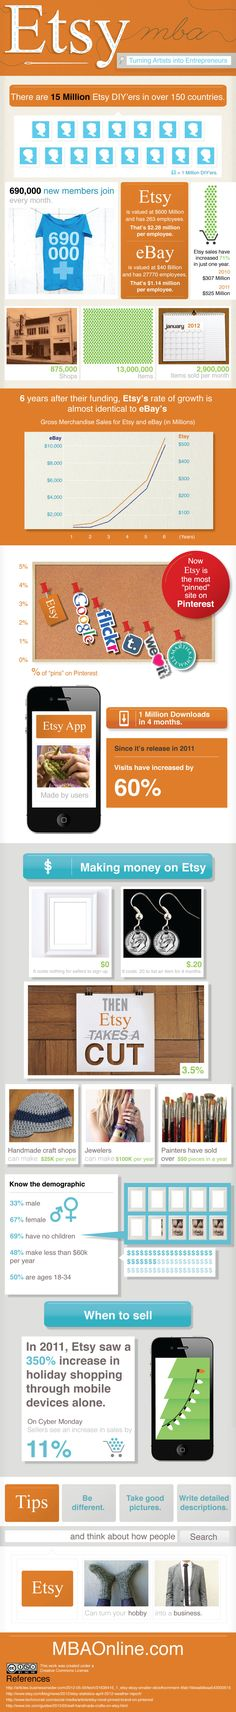 Etsy - http://trends.e-strategyblog.com/2012/07/11/etsy-infographic/1606 #Infographic